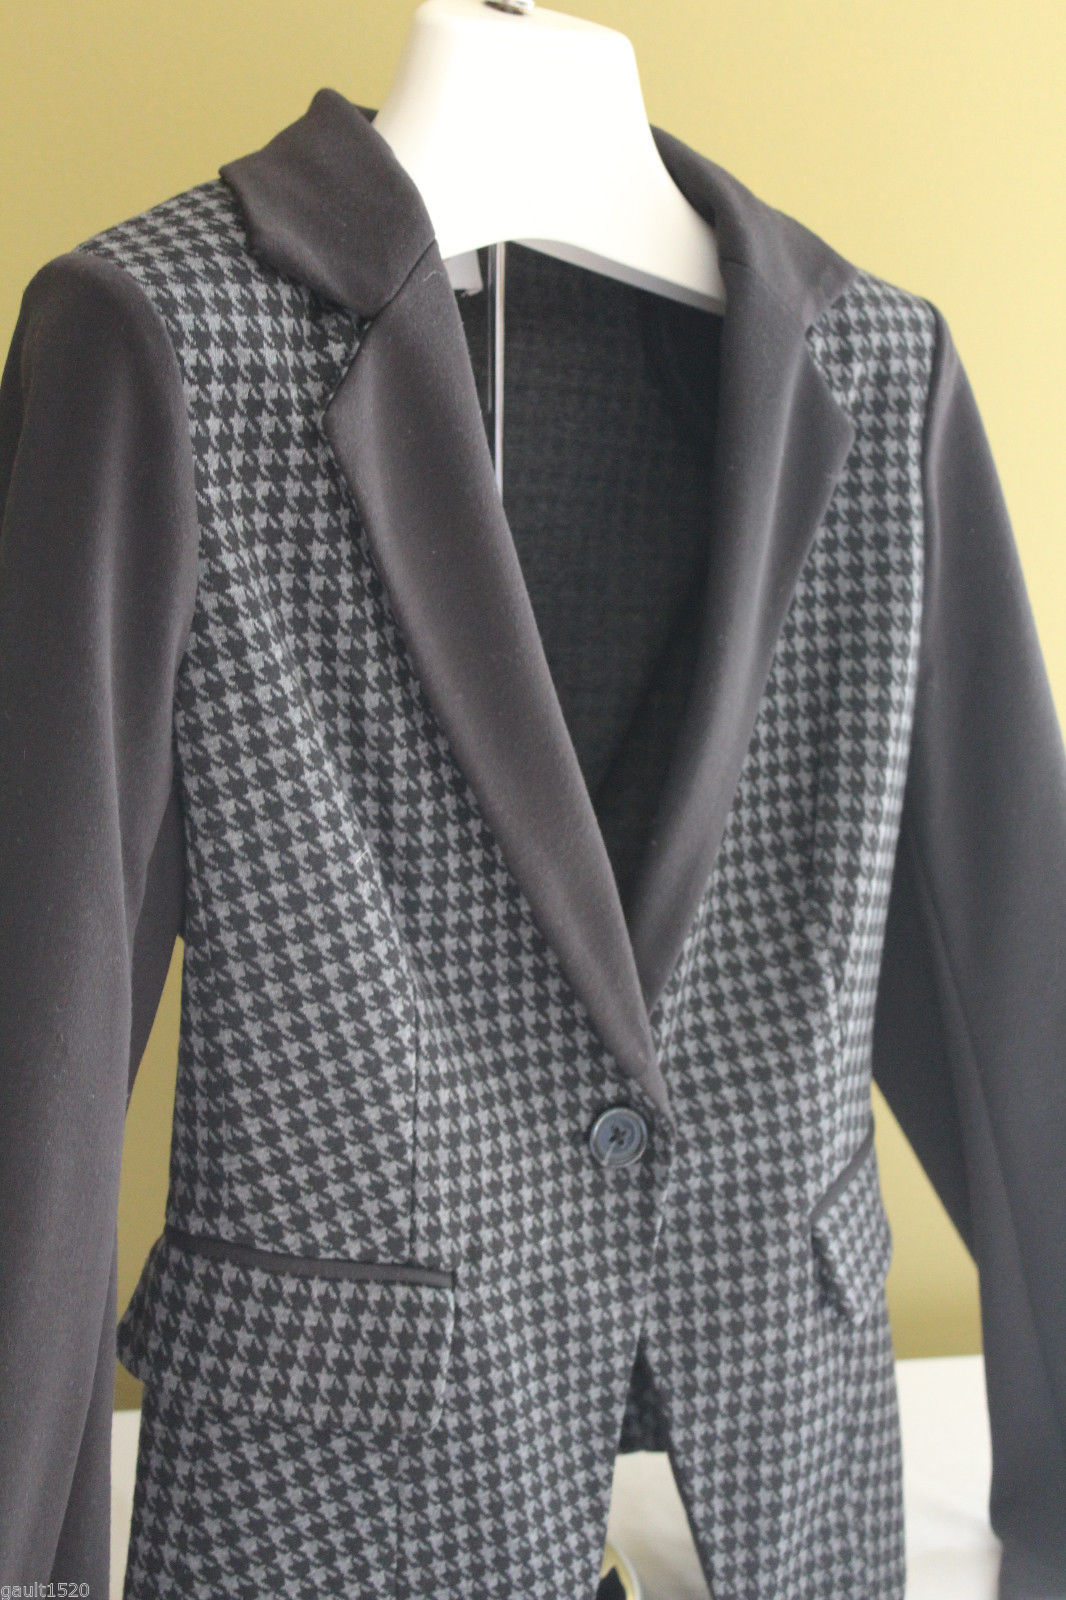 a14c80b3922a S l1600. S l1600. Previous. NWT Laundry by Shelli Segal Black Gray  Houndstooth Blazer Suit Jacket 8  228 · NWT Laundry ...